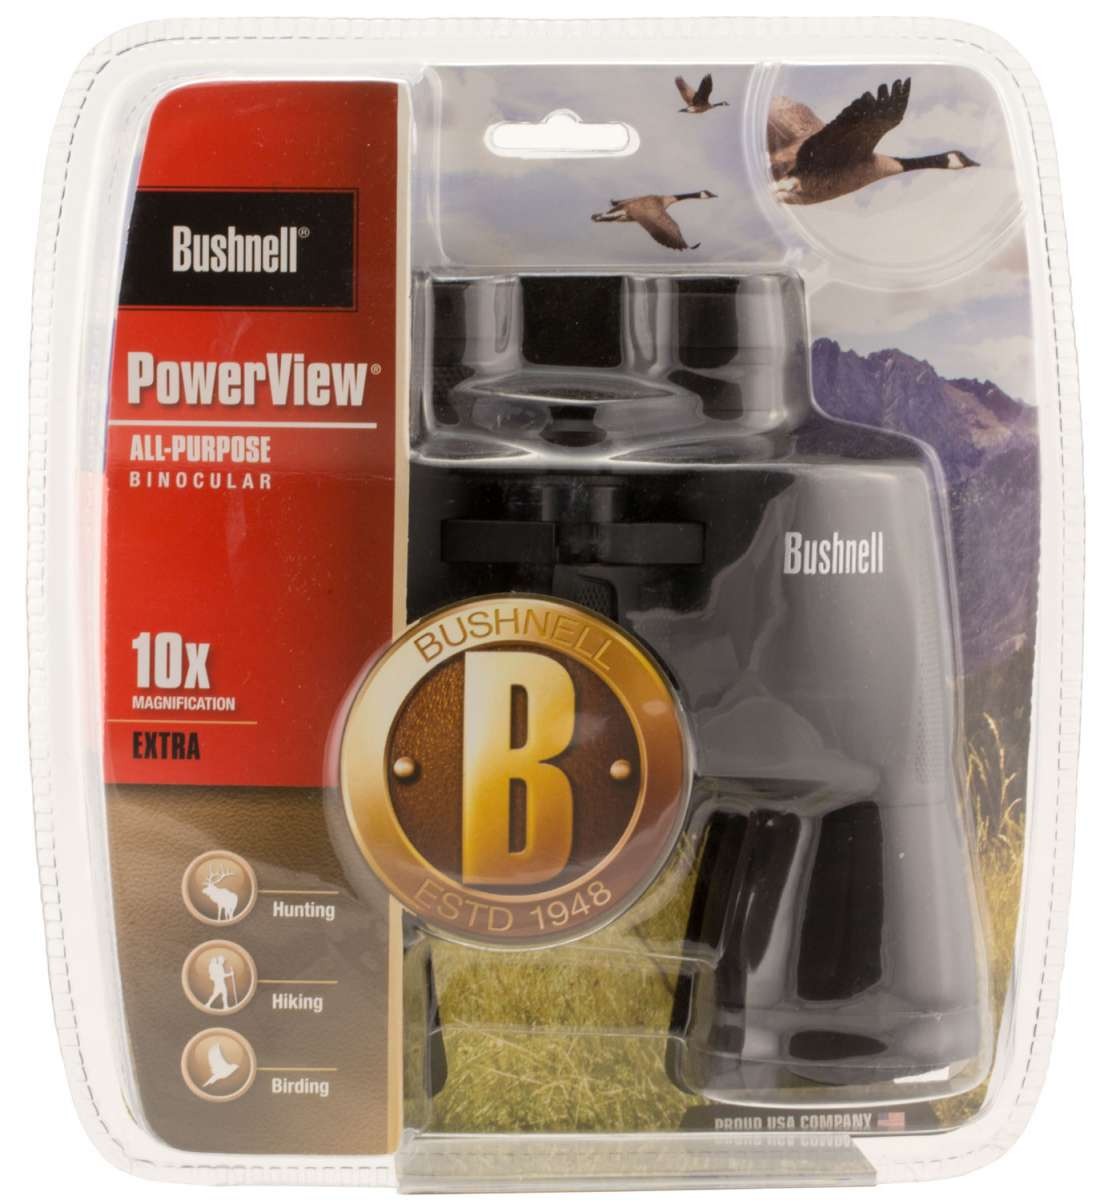 Bushnell Powerview 10x 50mm 341 ft @ 1000 yds FOV 10mm Eye Relief Blue Rubber Armor